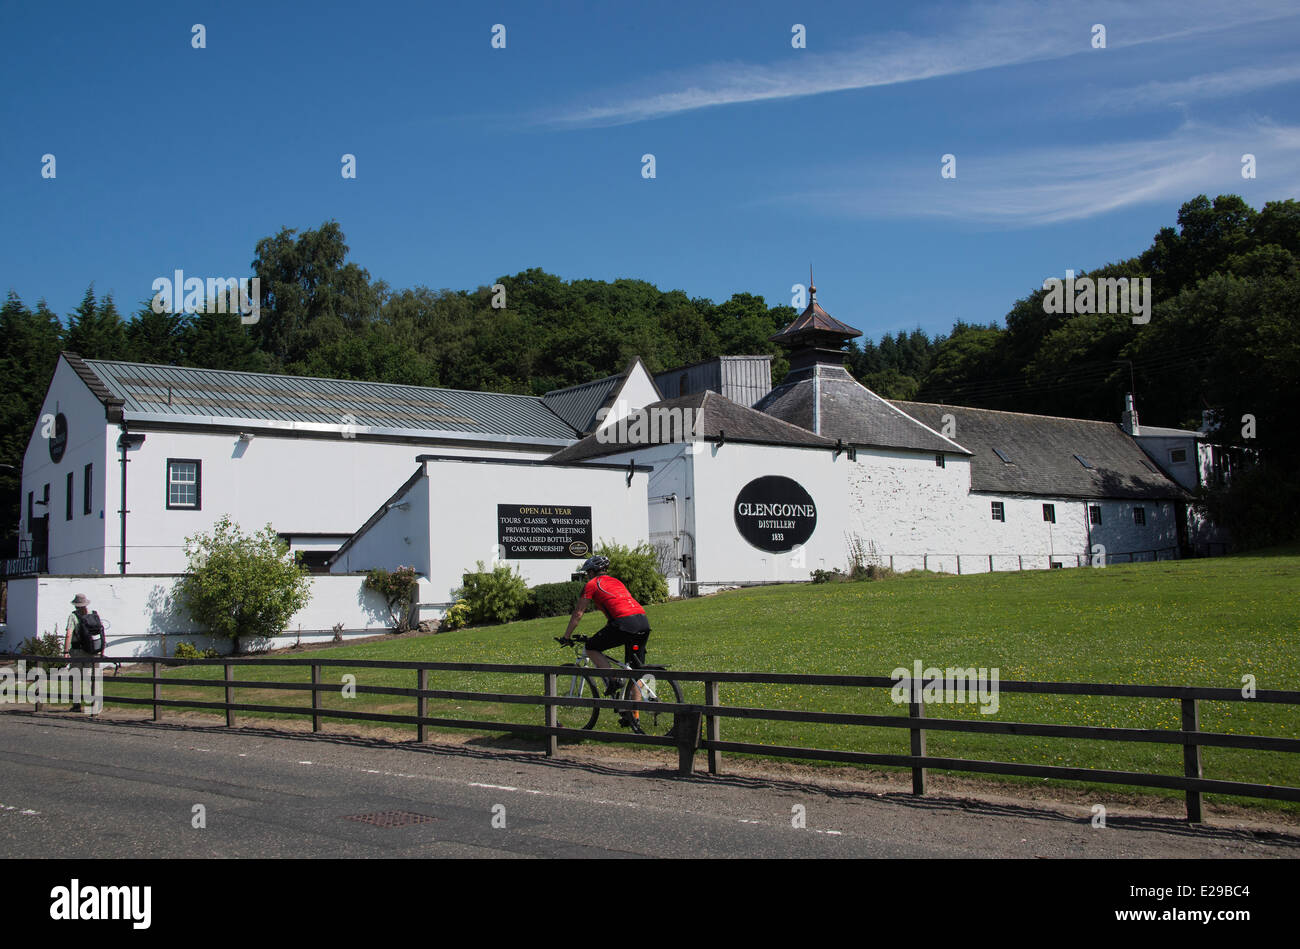 Glengoyne Whisky Distillery - Stock Image